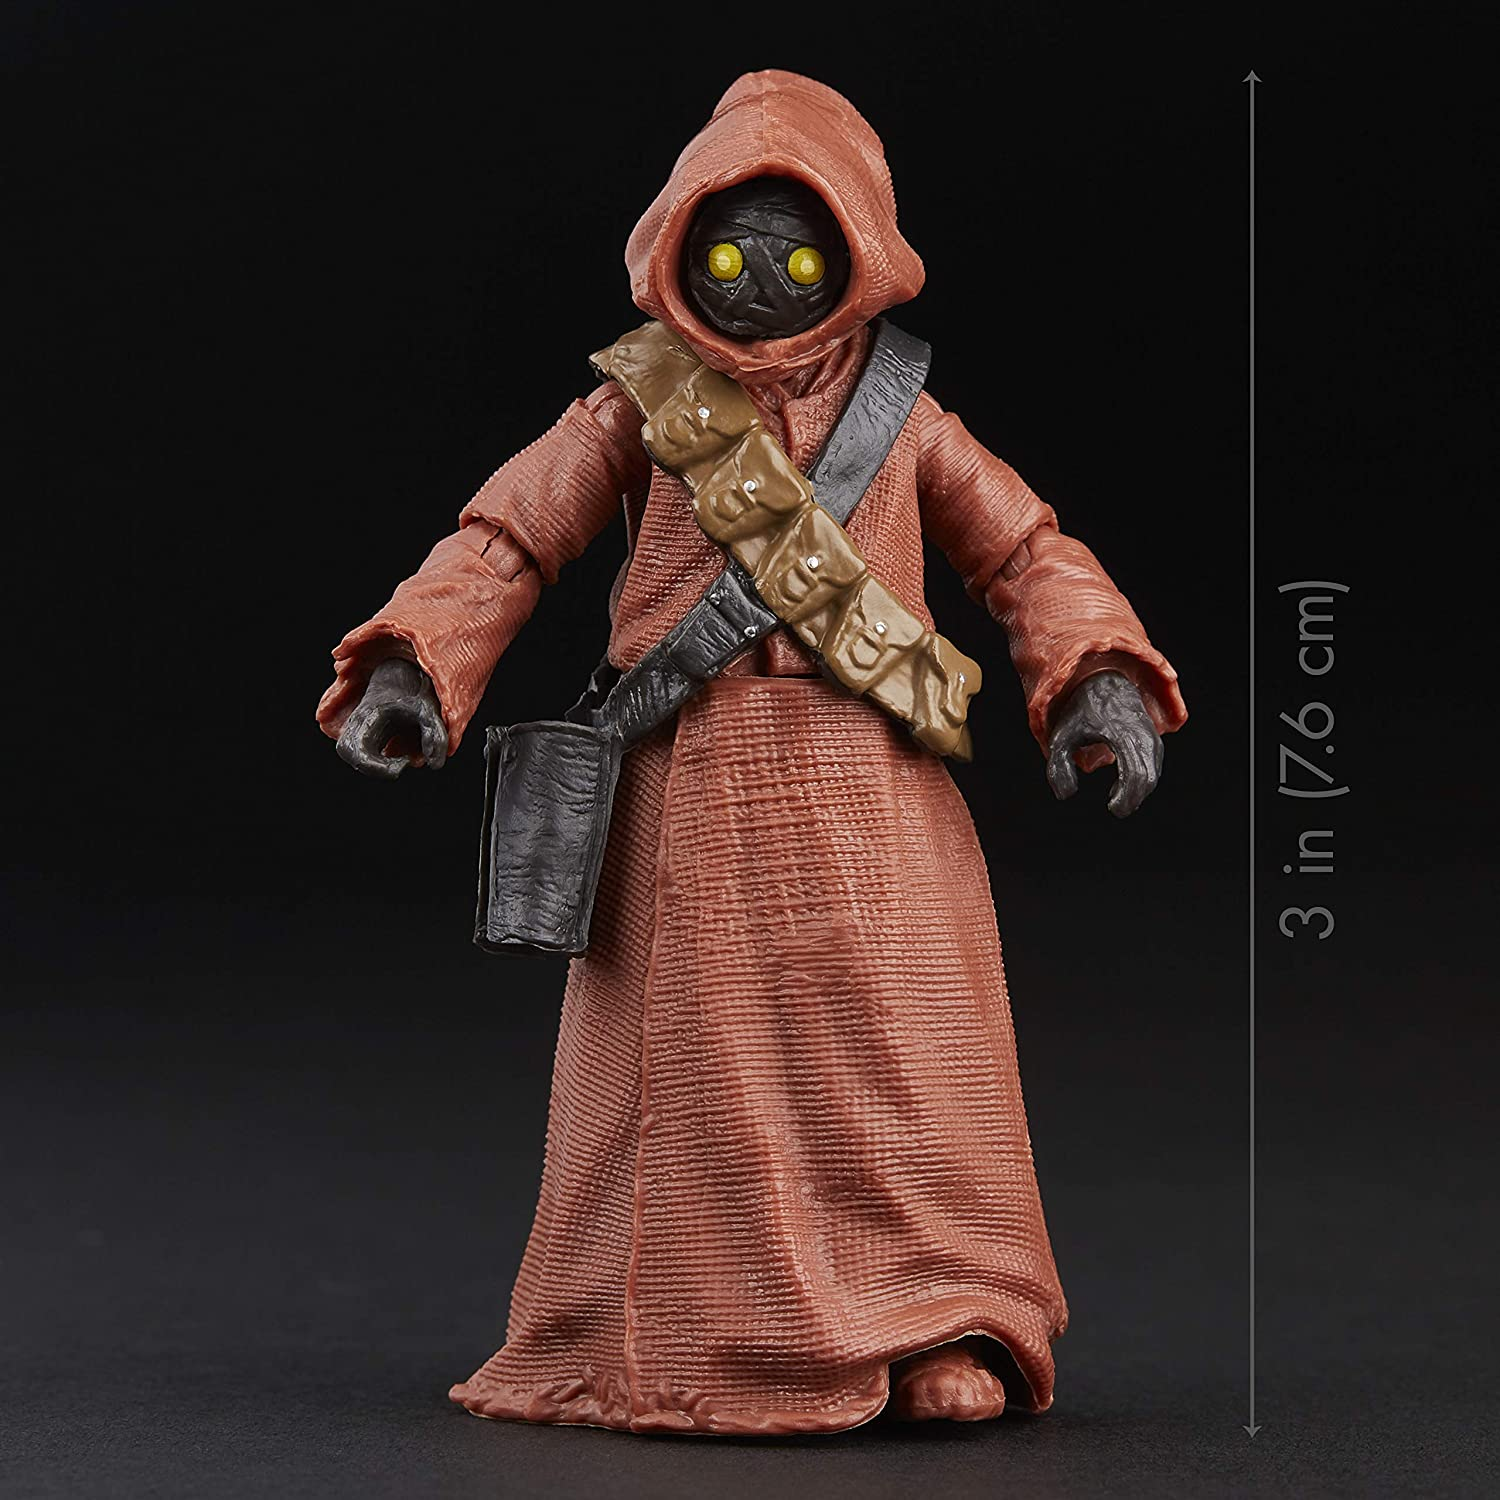 Toys for Kids Ages 4 and Up A New Hope Jawa Toy Star Wars The Vintage Collection Star Wars 3.75-inch Scale Action Figure